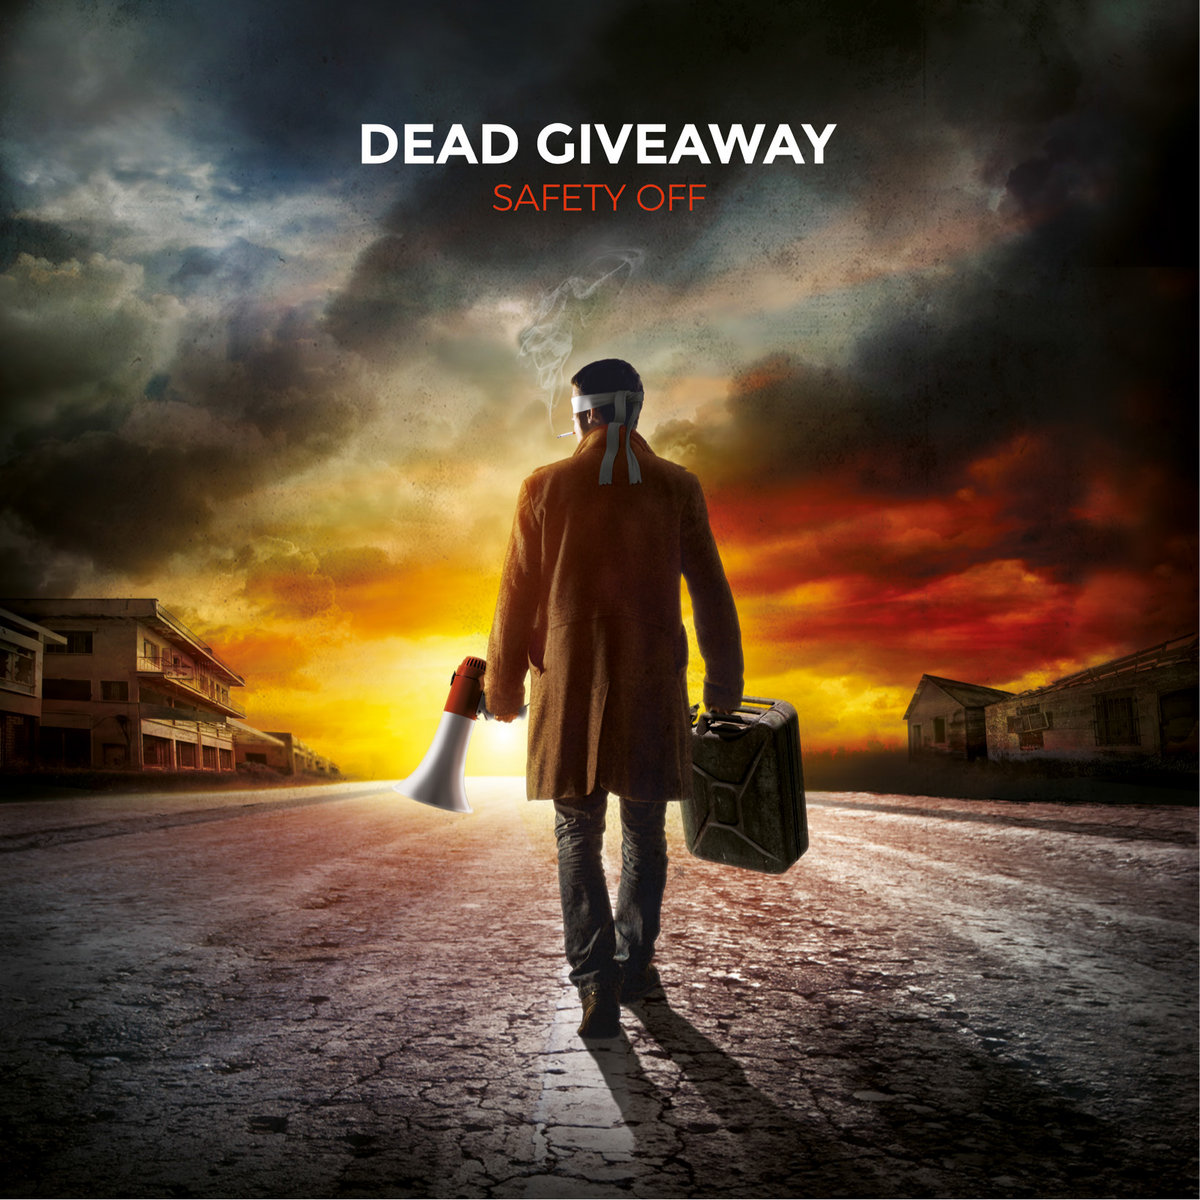 dead giveaway lyrics